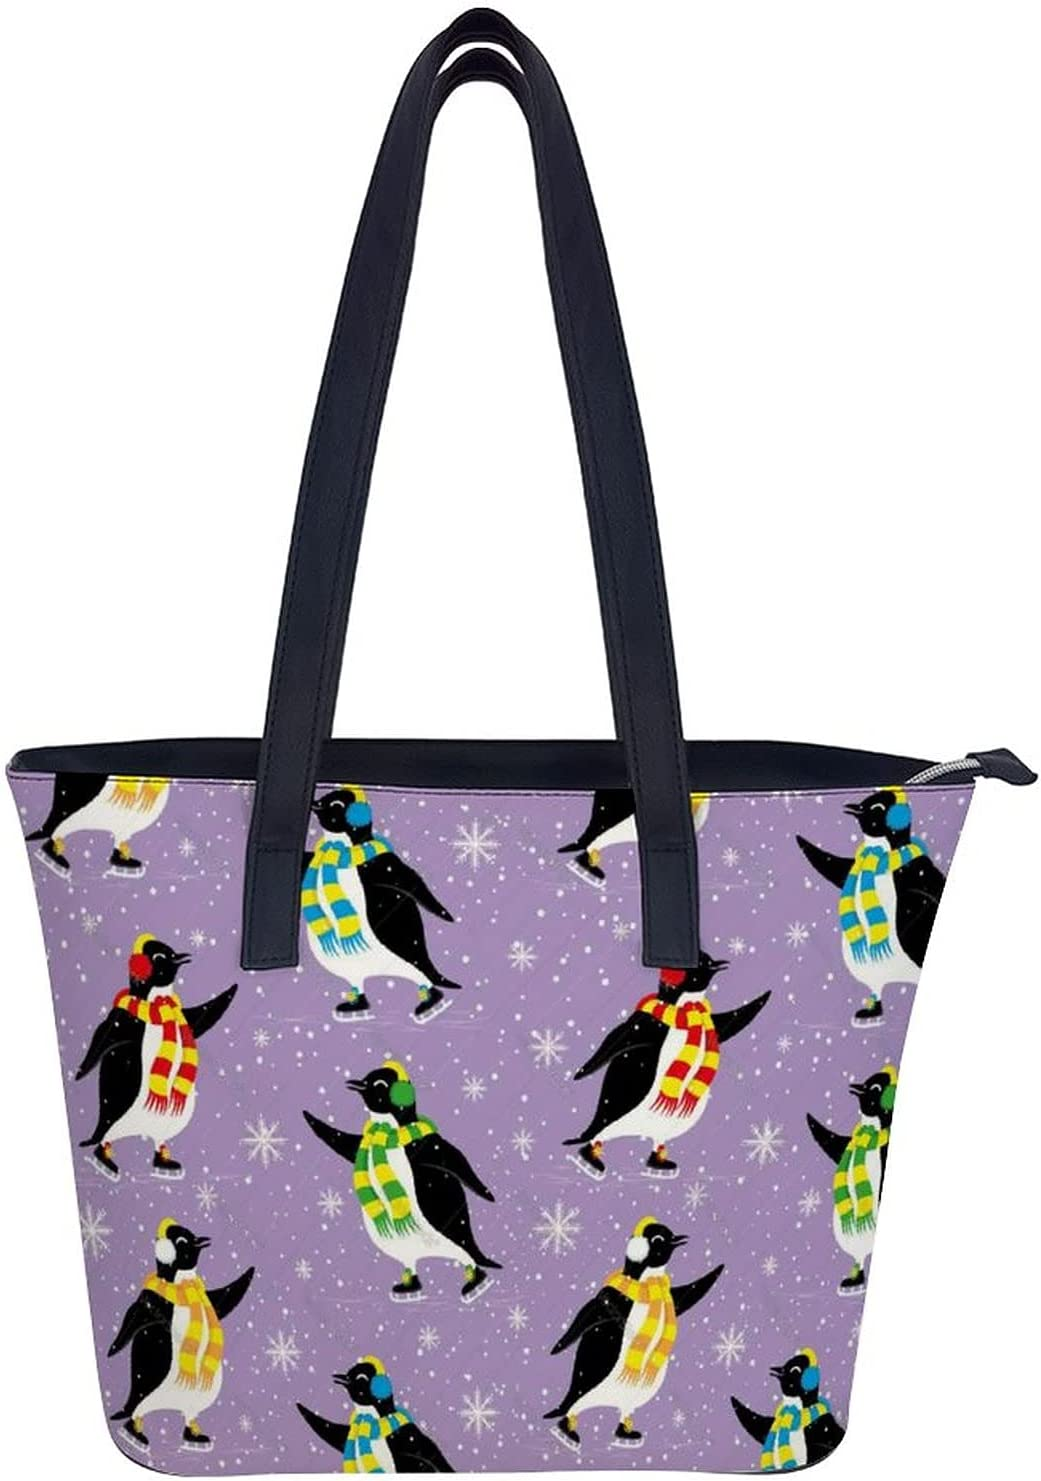 Cute Max 67% OFF Penguins Women's Fashion Tote Shoulder Handbags Bag Sales results No. 1 Leather